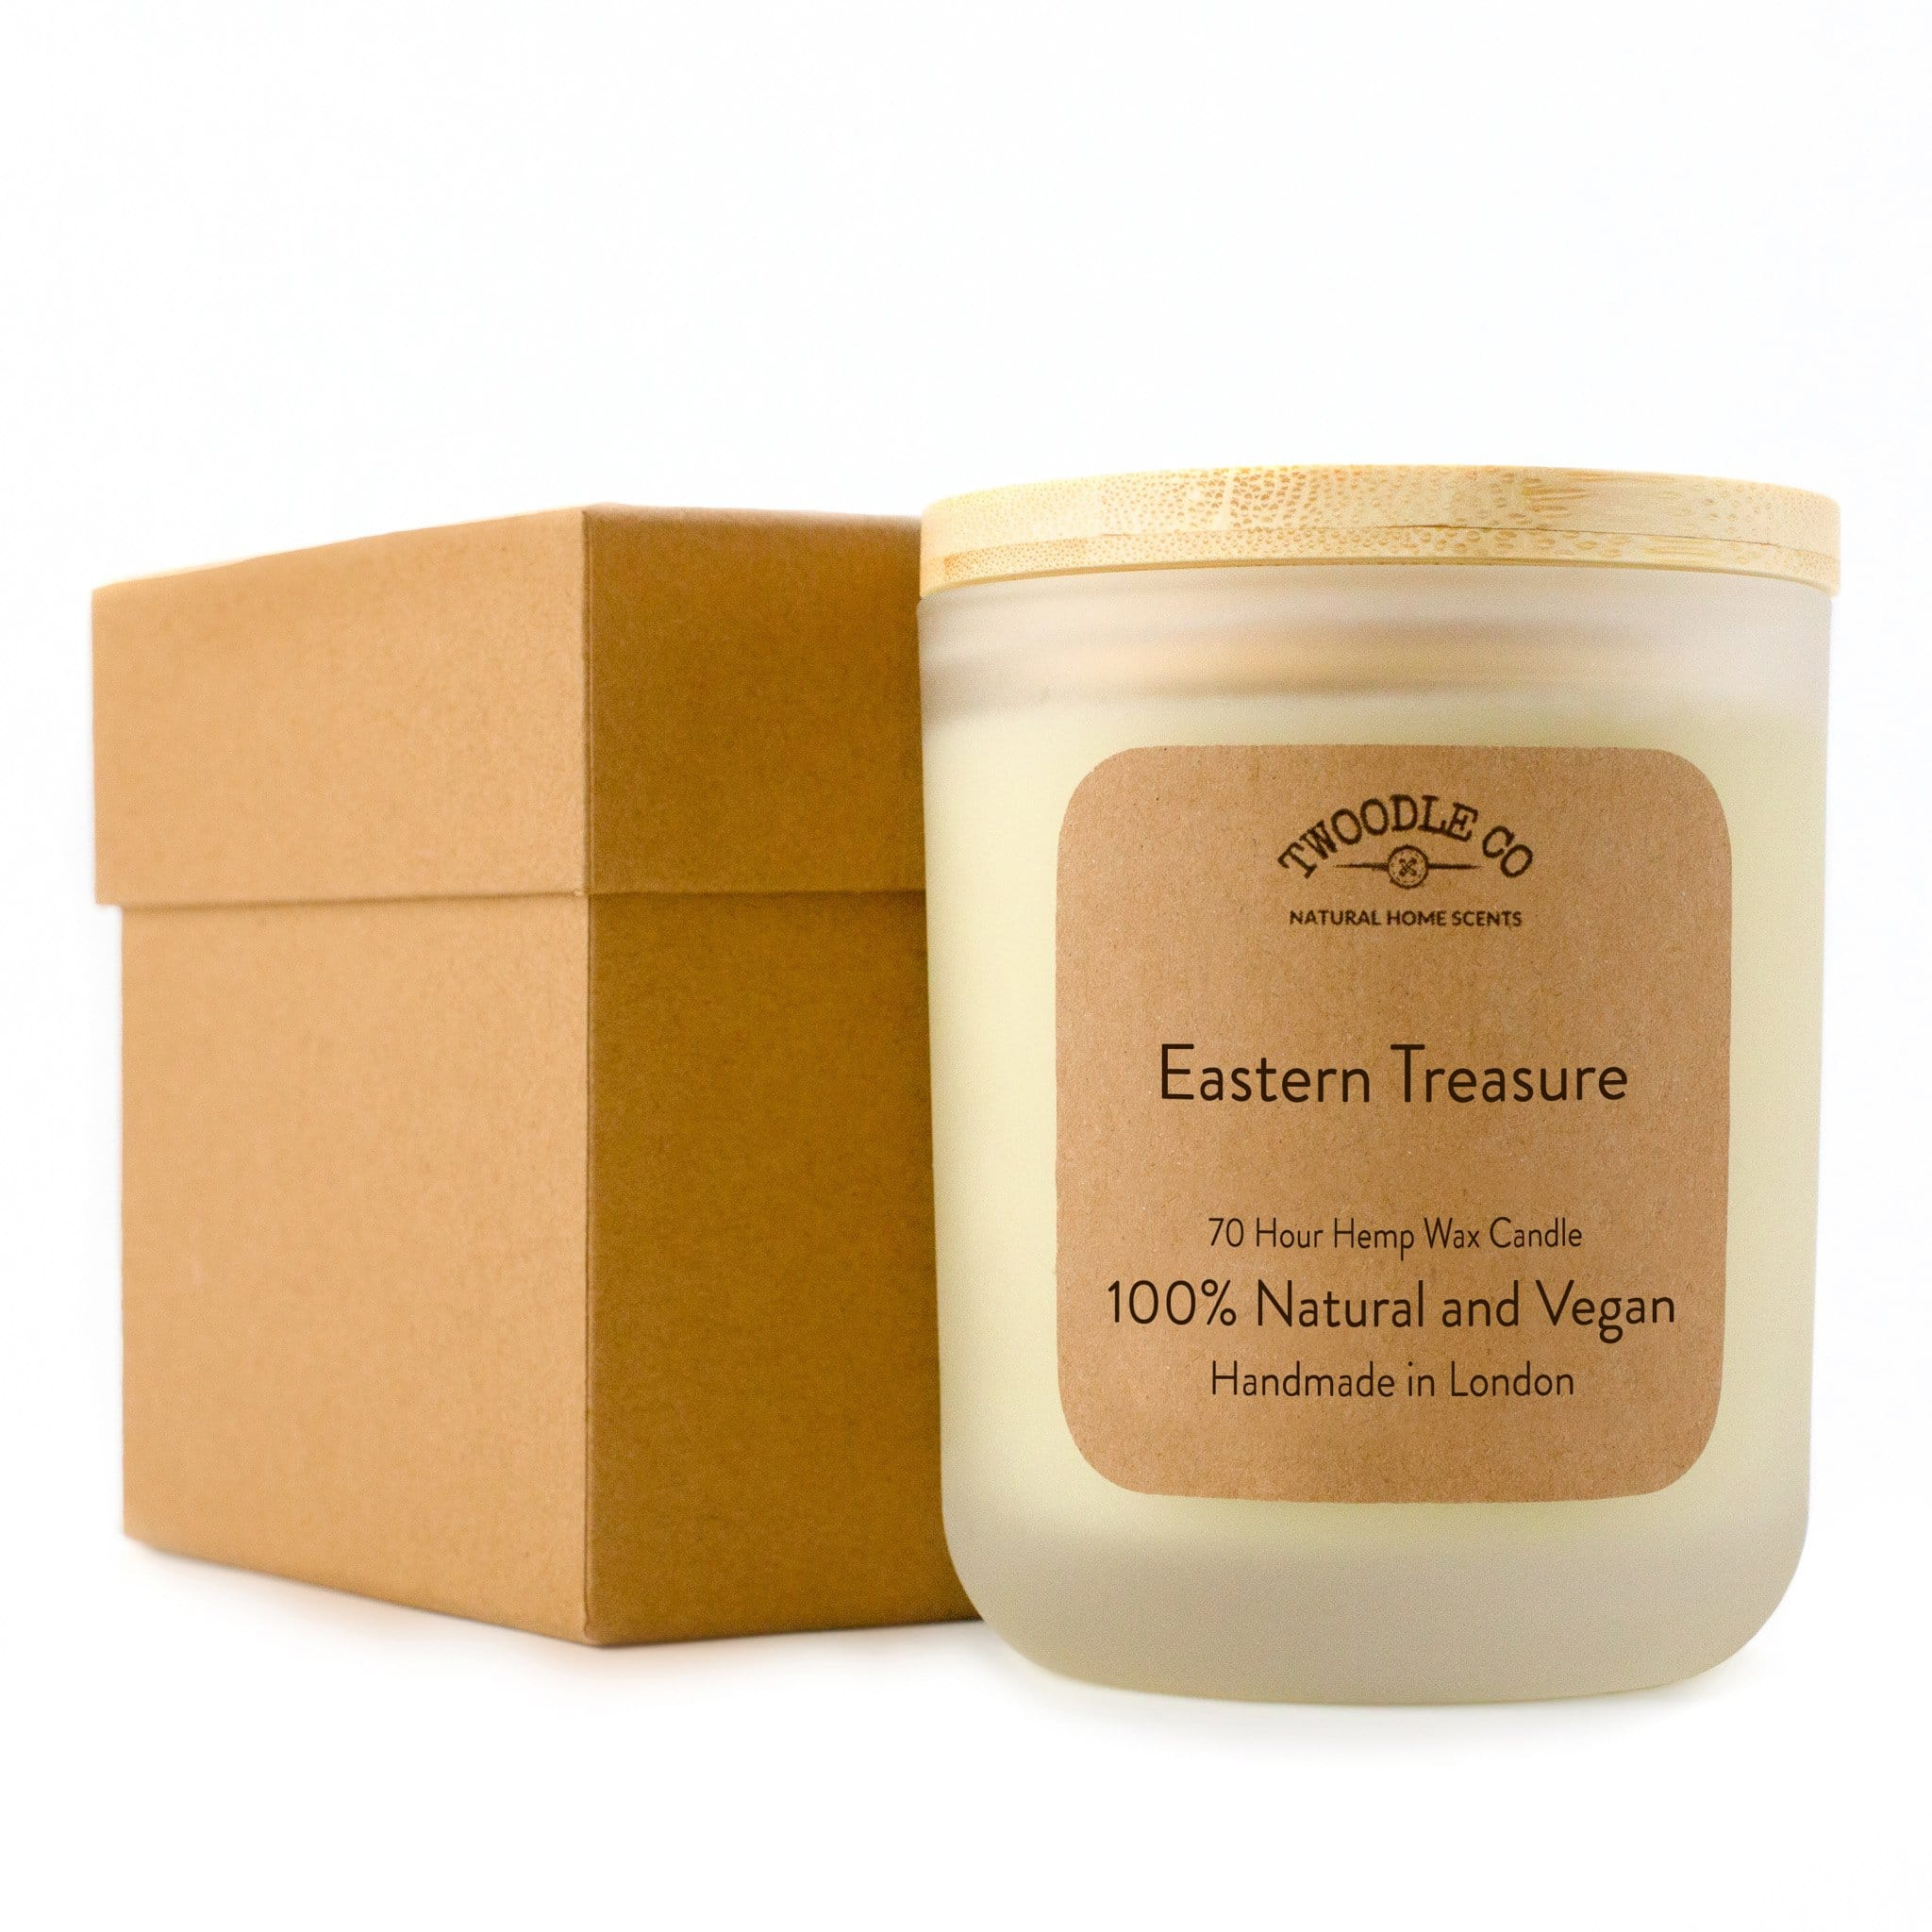 Eastern Treasure Large Scented Candle 70 Hour